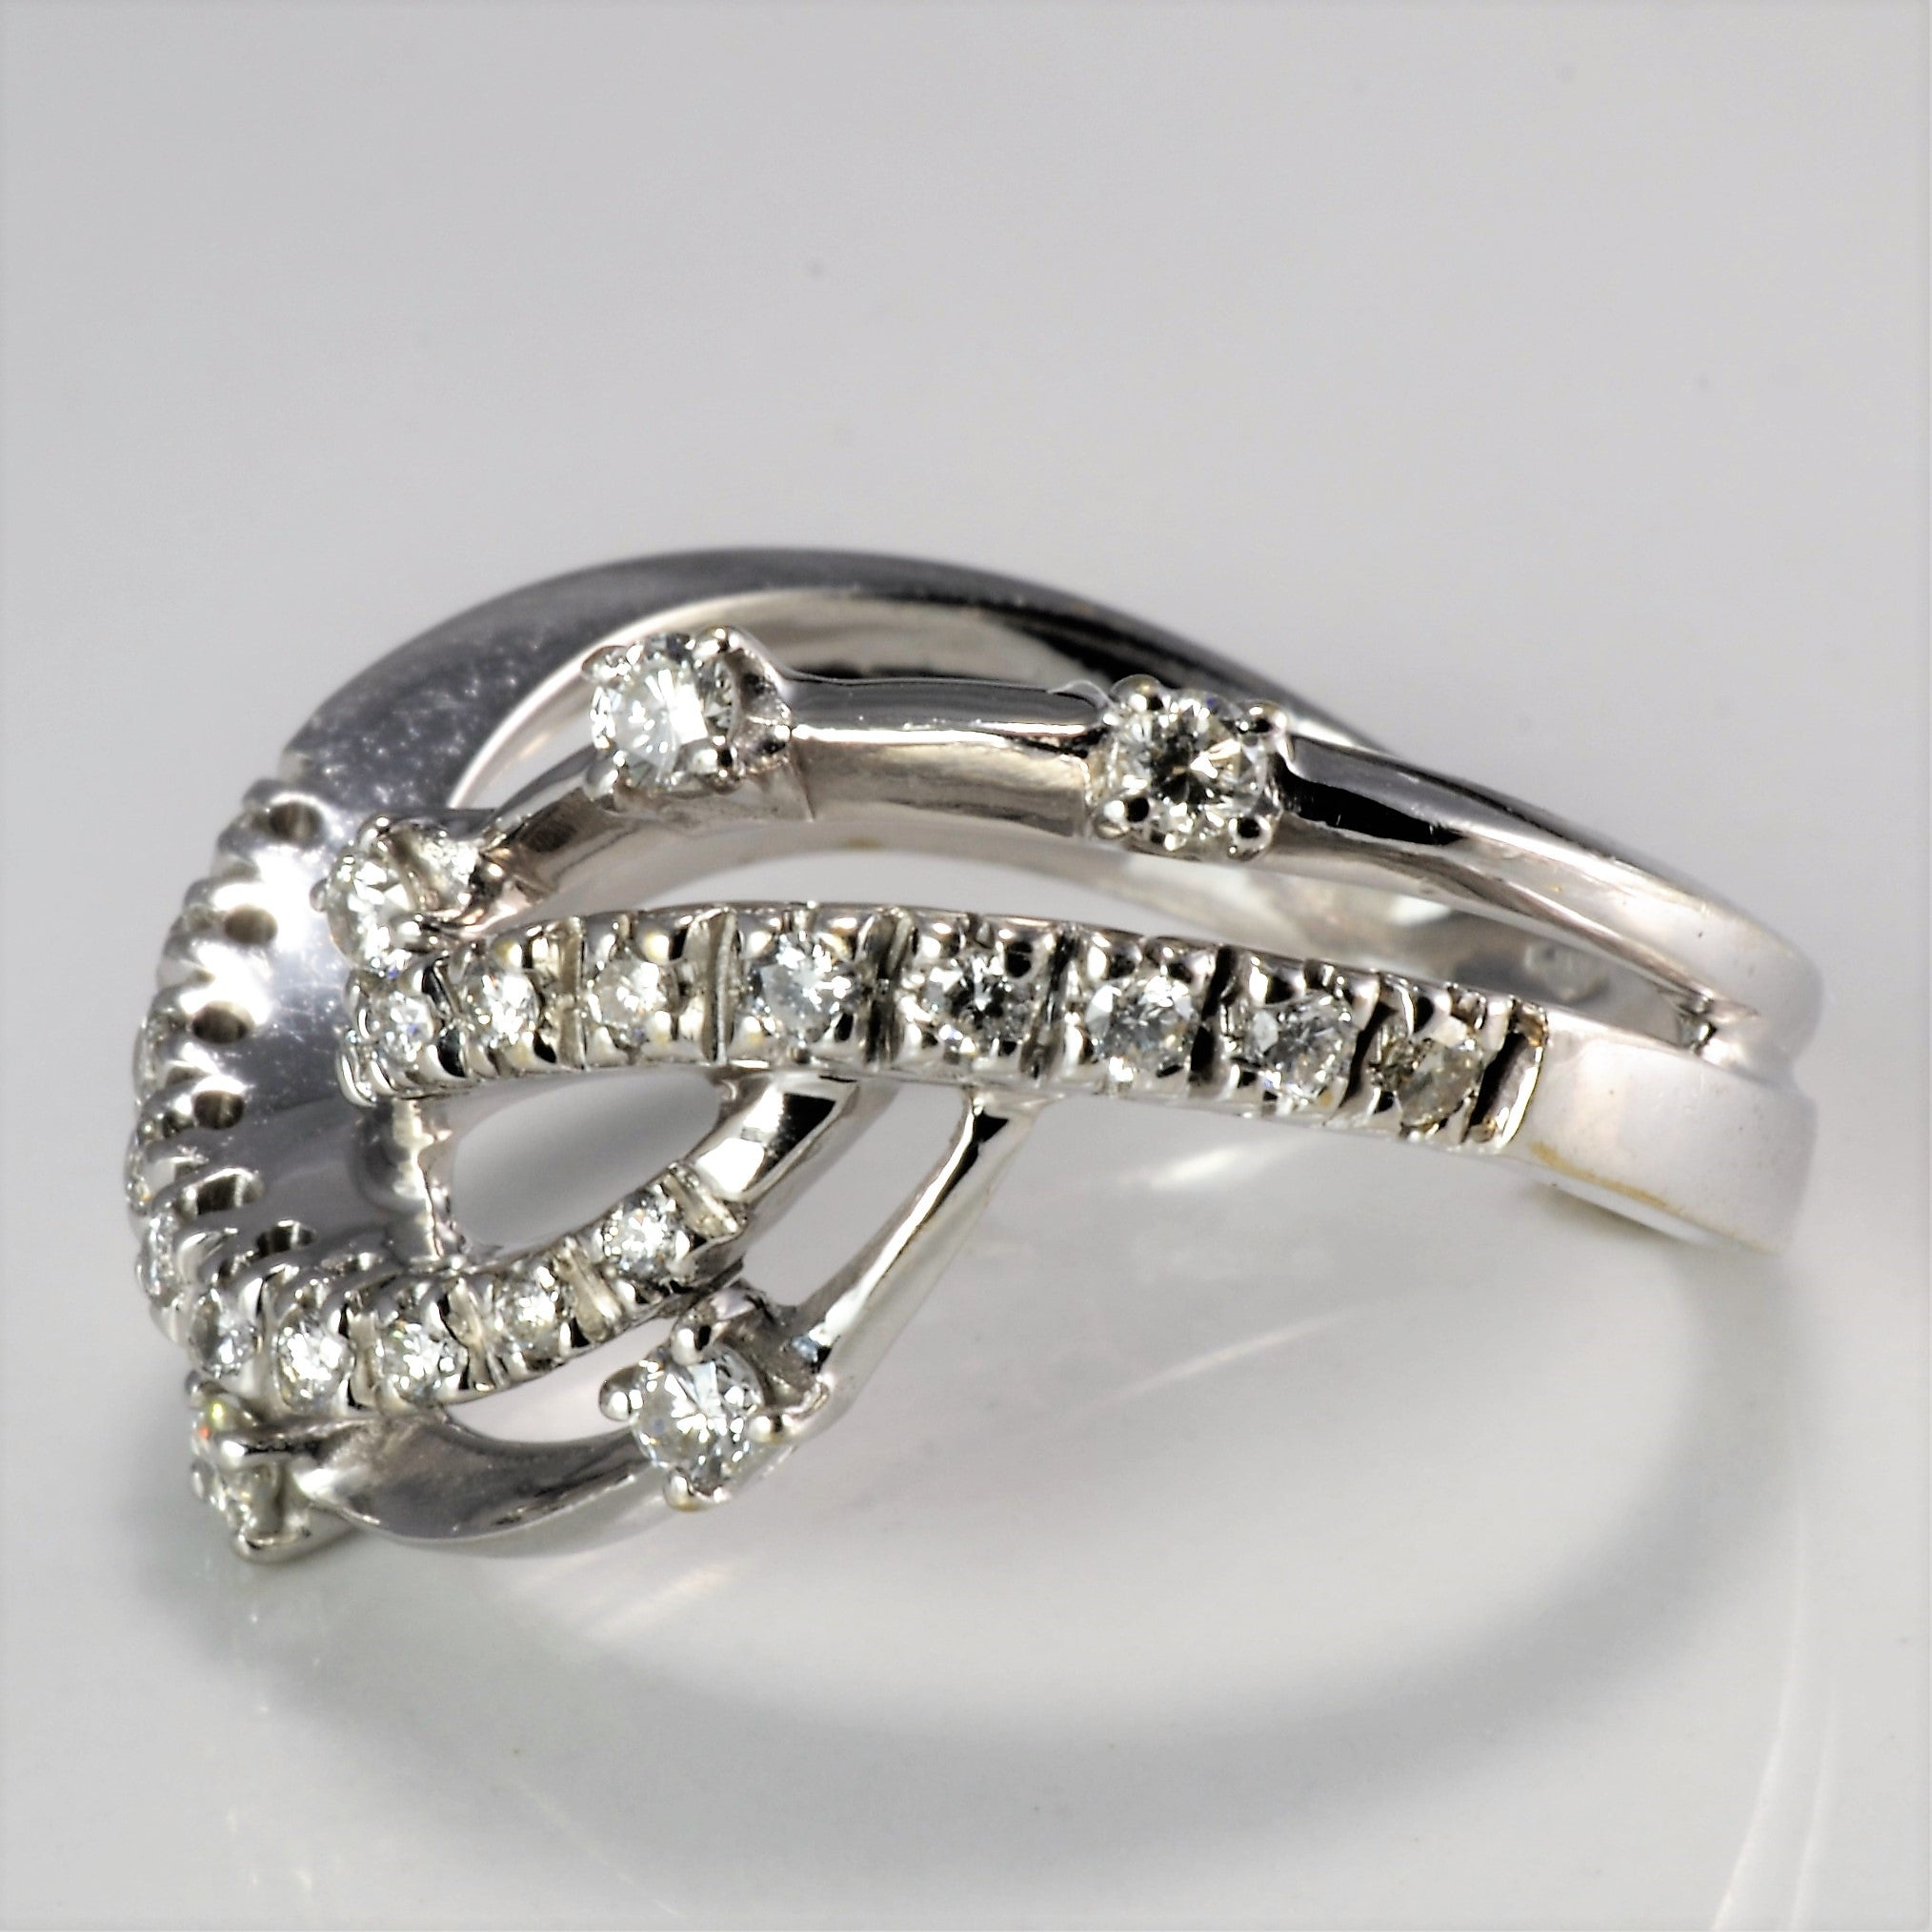 Chevron Pave Diamond Ladies Ring | 0.29 ctw, SZ 7 |